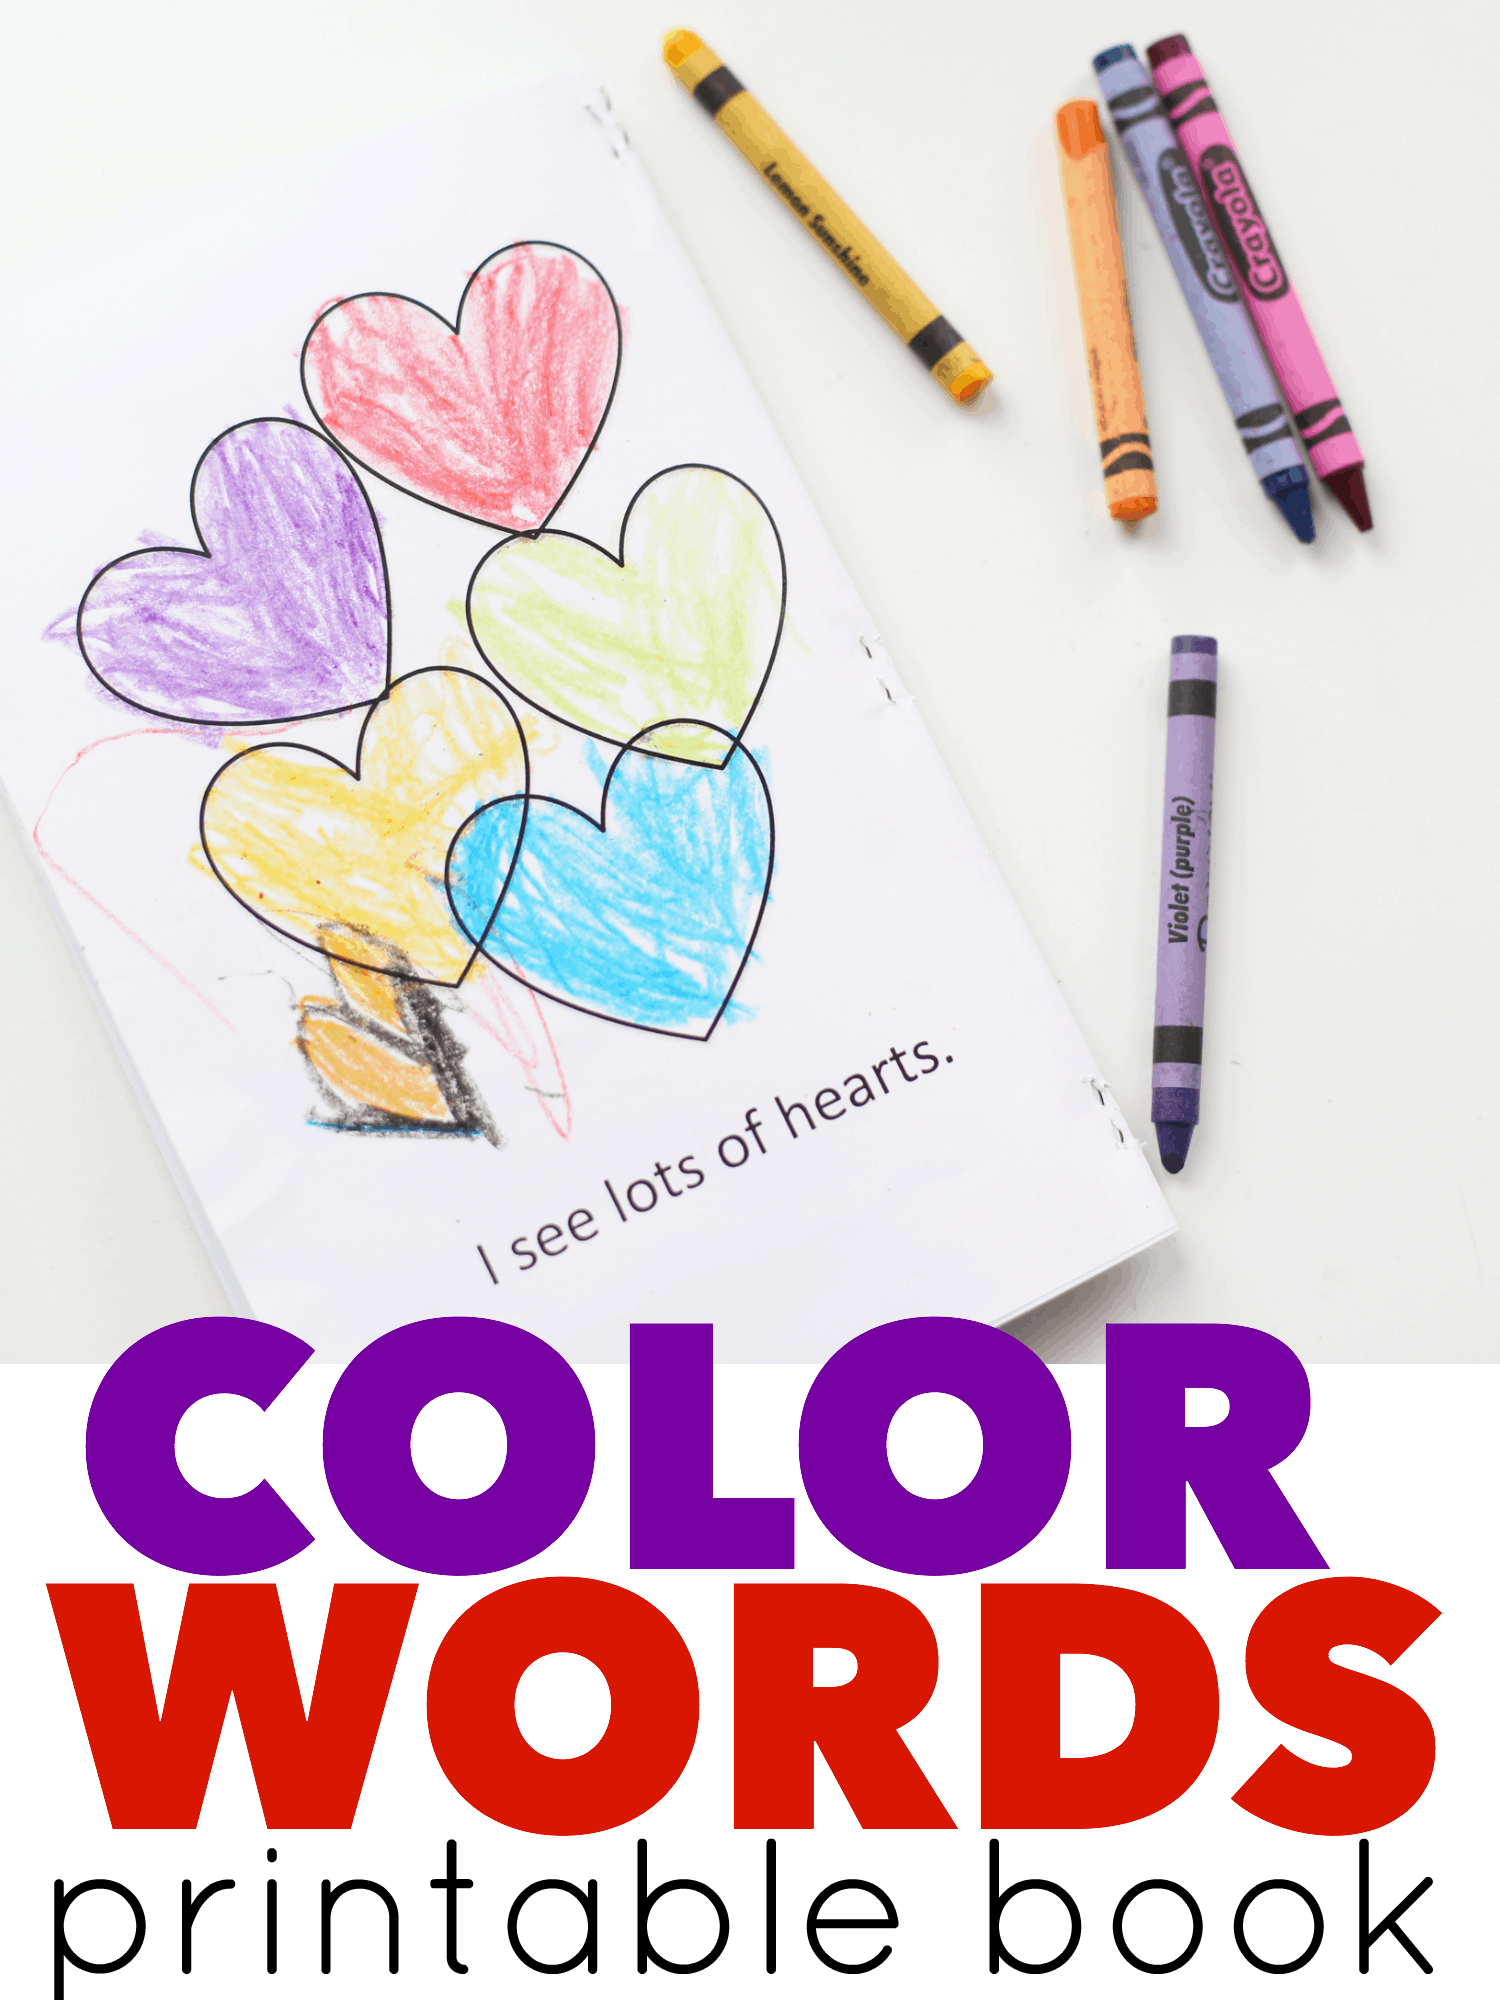 color words printable book for valentines day - Valentines Day Book